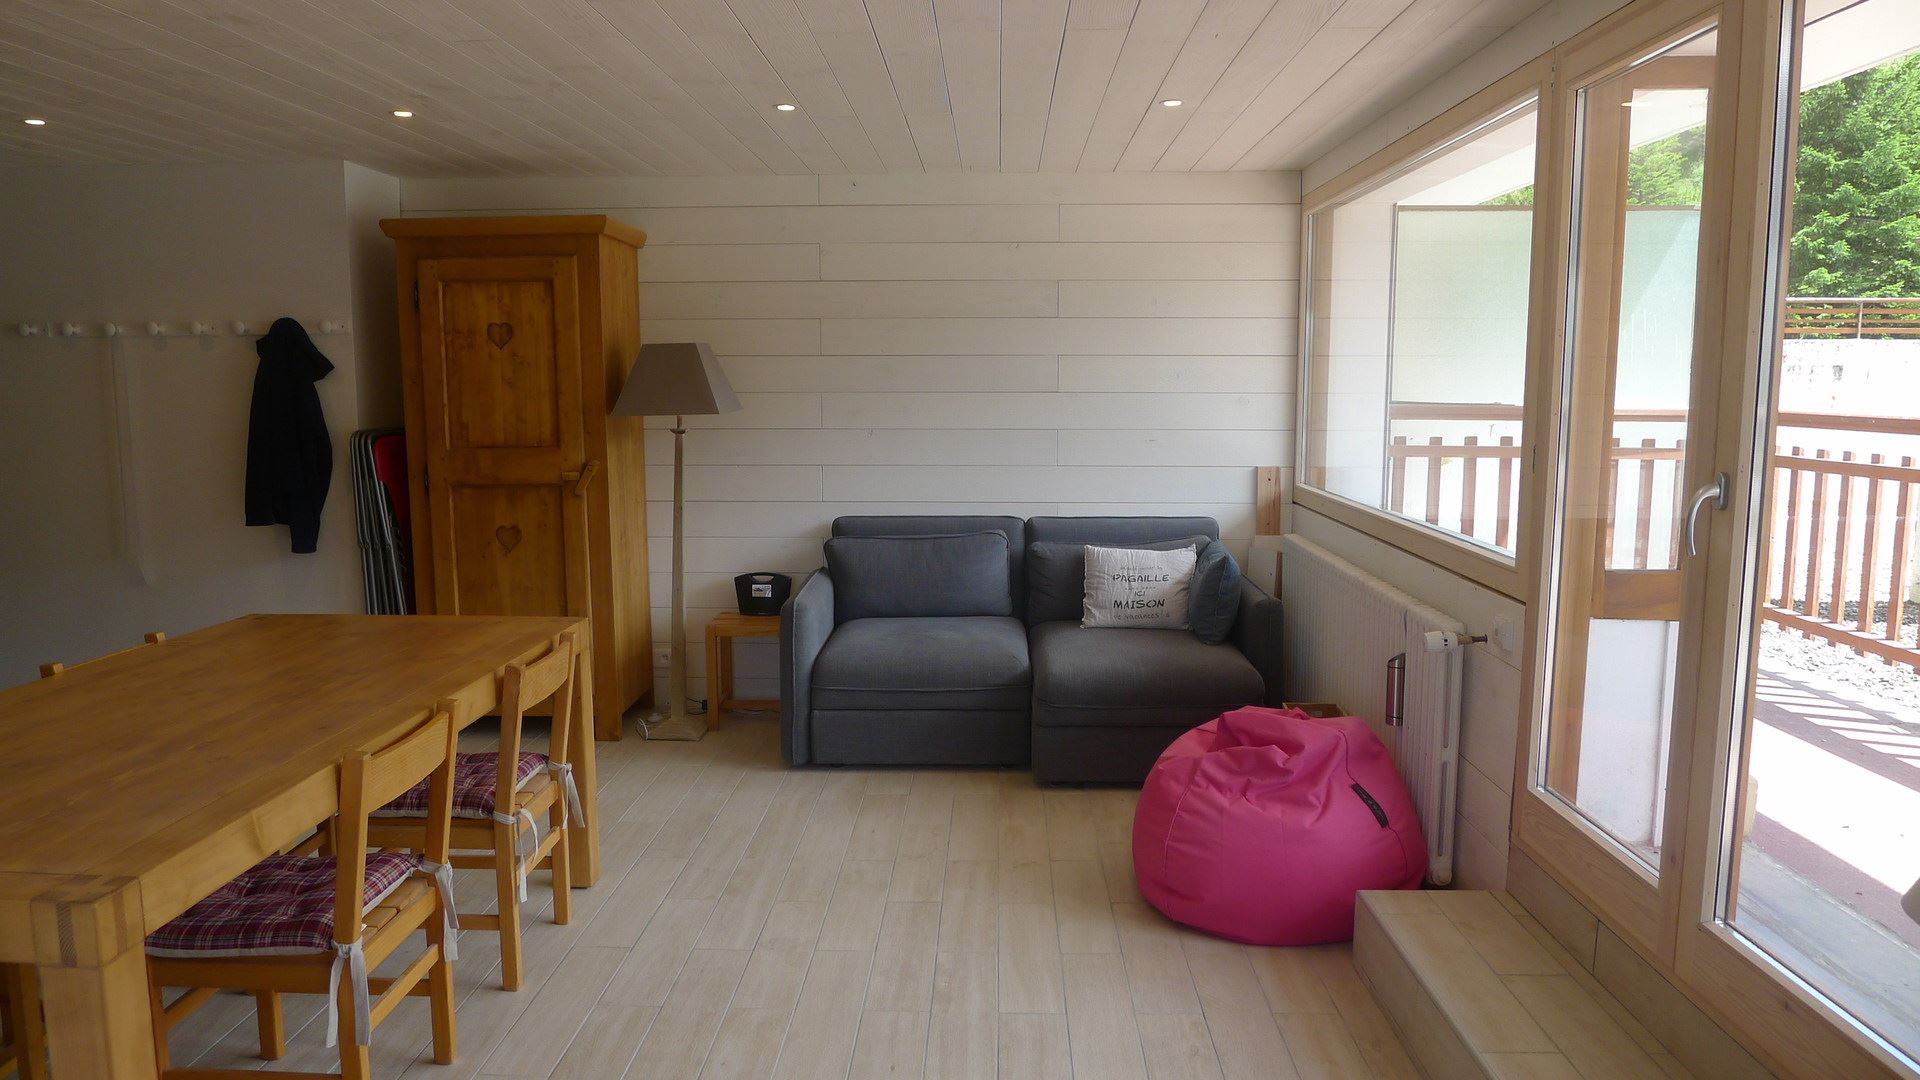 2 rooms 6 people / RESIDENCE 1650 3B (mountain of charm)